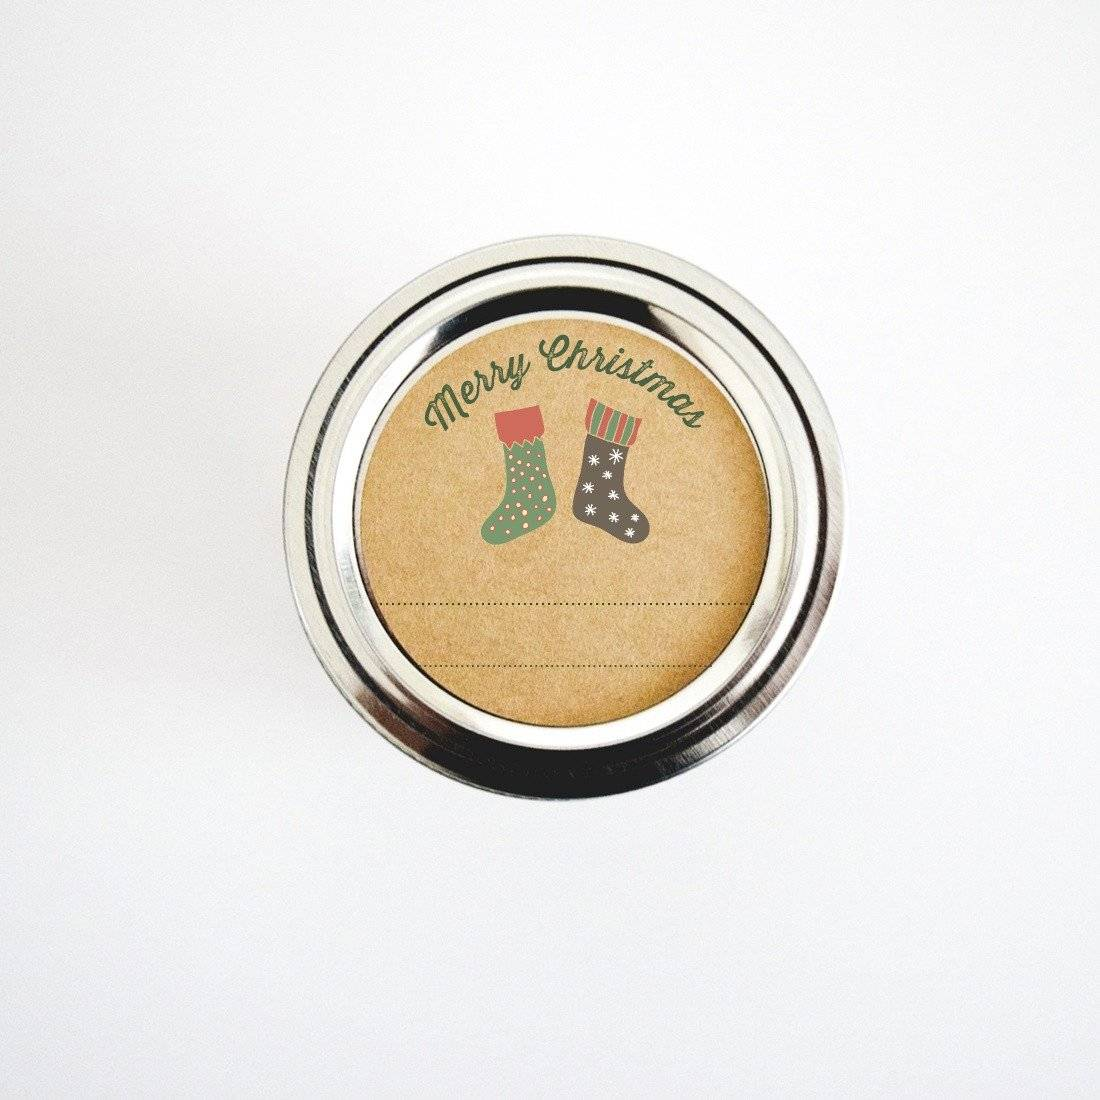 Christmas stockings canning labels